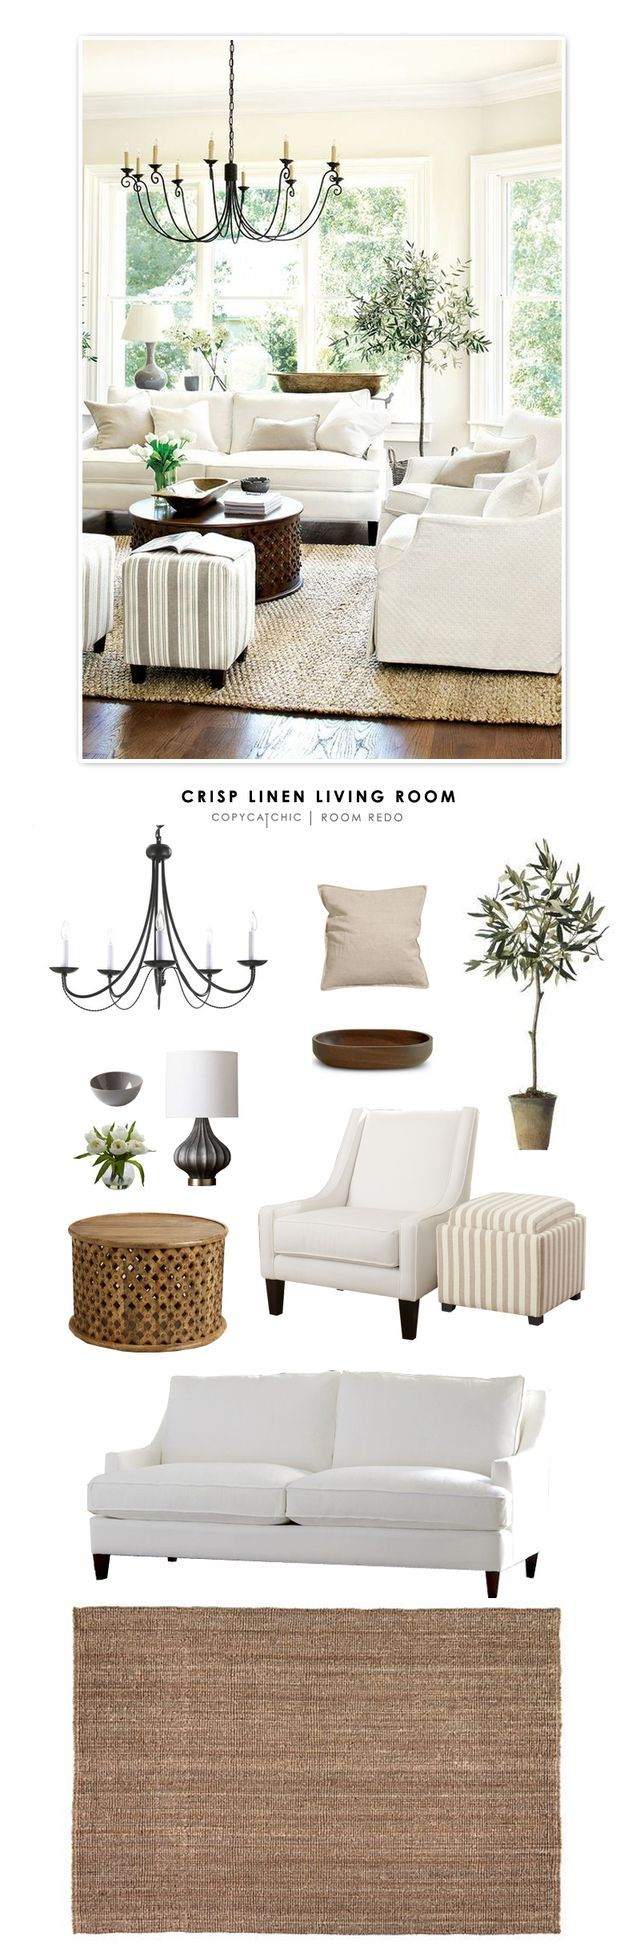 living room furniture budget%0A A gorgeous neutral and summer living room design originally featured on  Ballard Designs is recreated for less by Copy Cat Chic  budget home decor